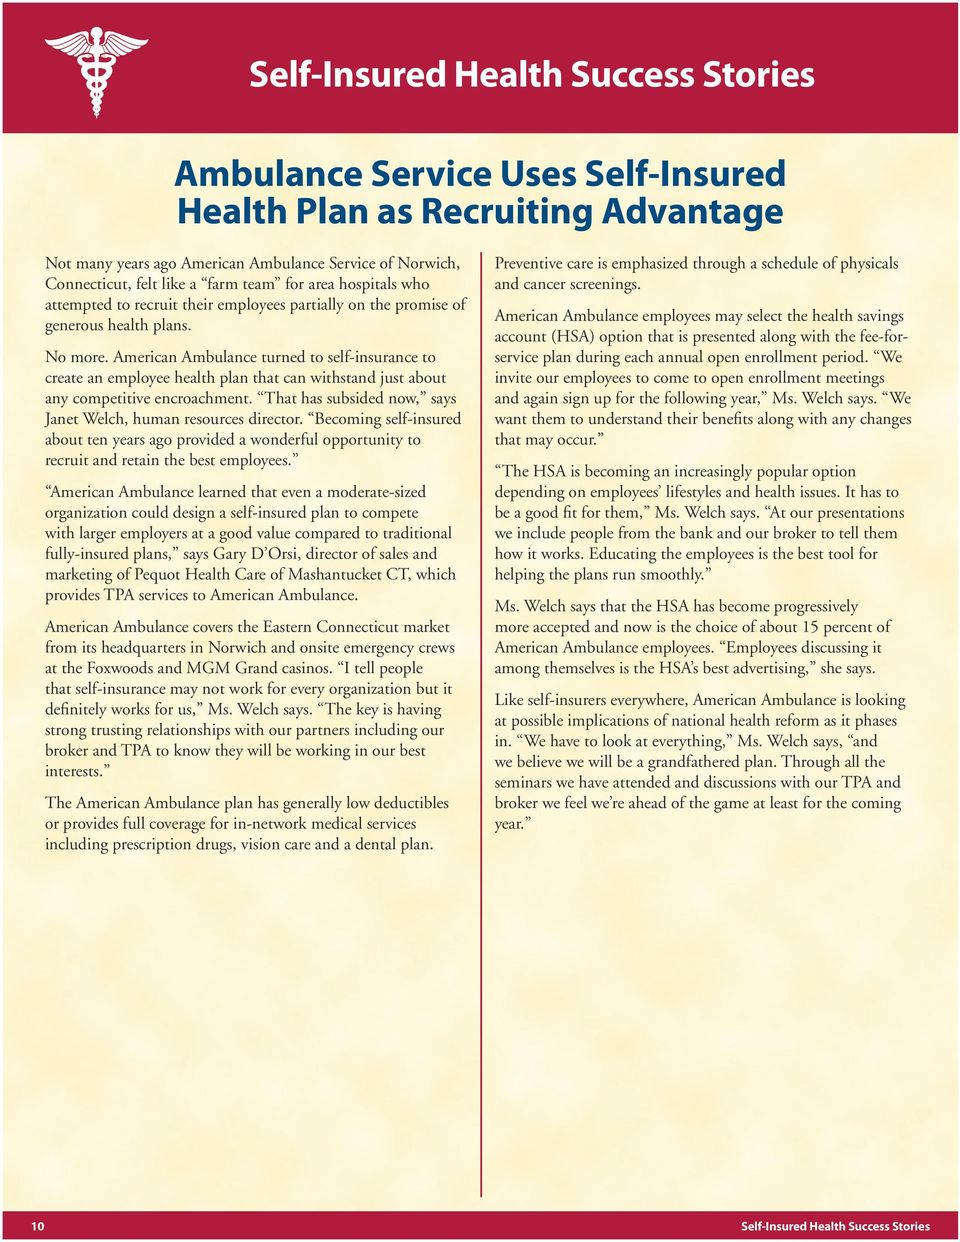 American Ambulance turned to self-insurance to create an employee health plan that can withstand just about any competitive encroachment.